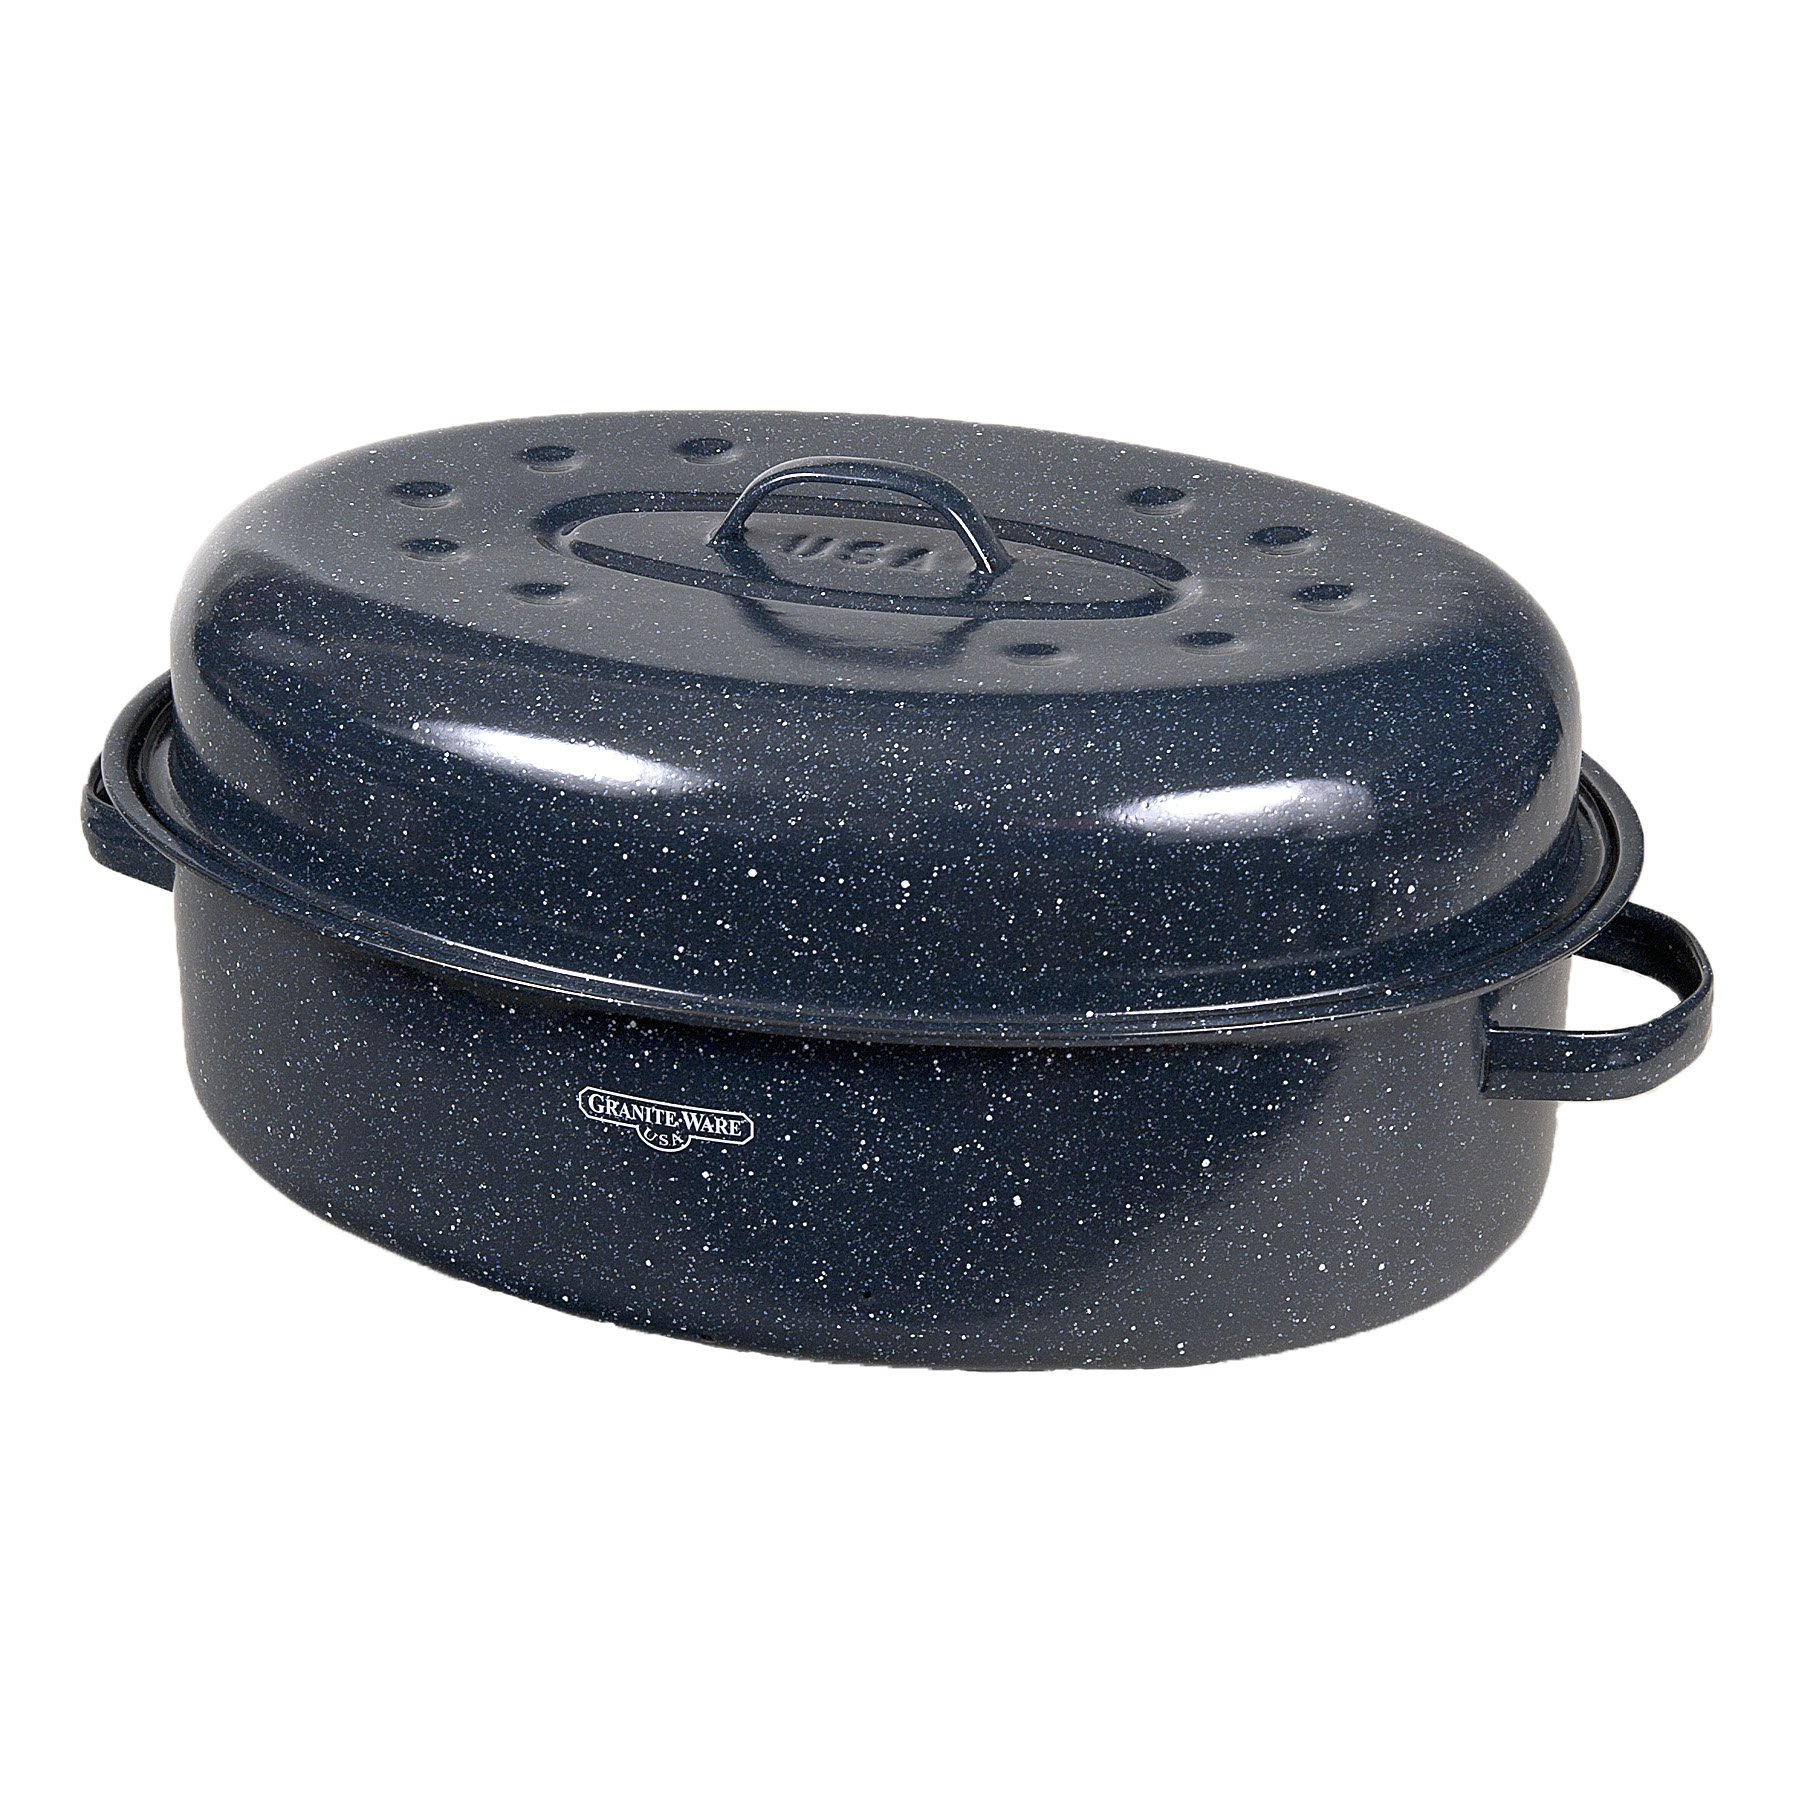 Granite Ware 19-Inch Covered Oval Roaster by Granite Ware